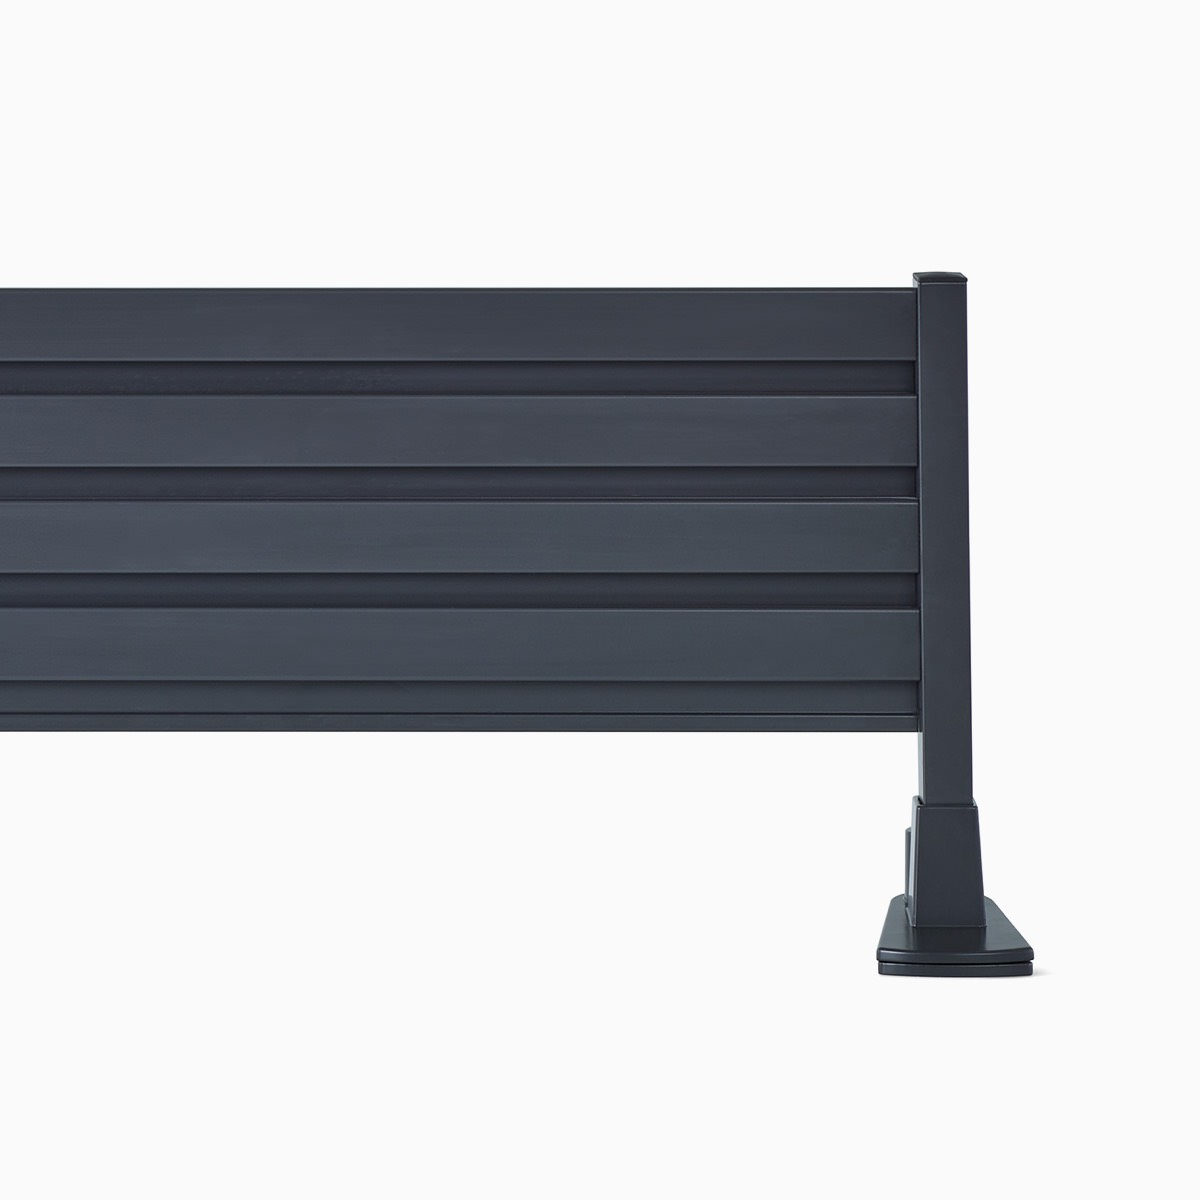 A black Surface-Attached Tool Rail.